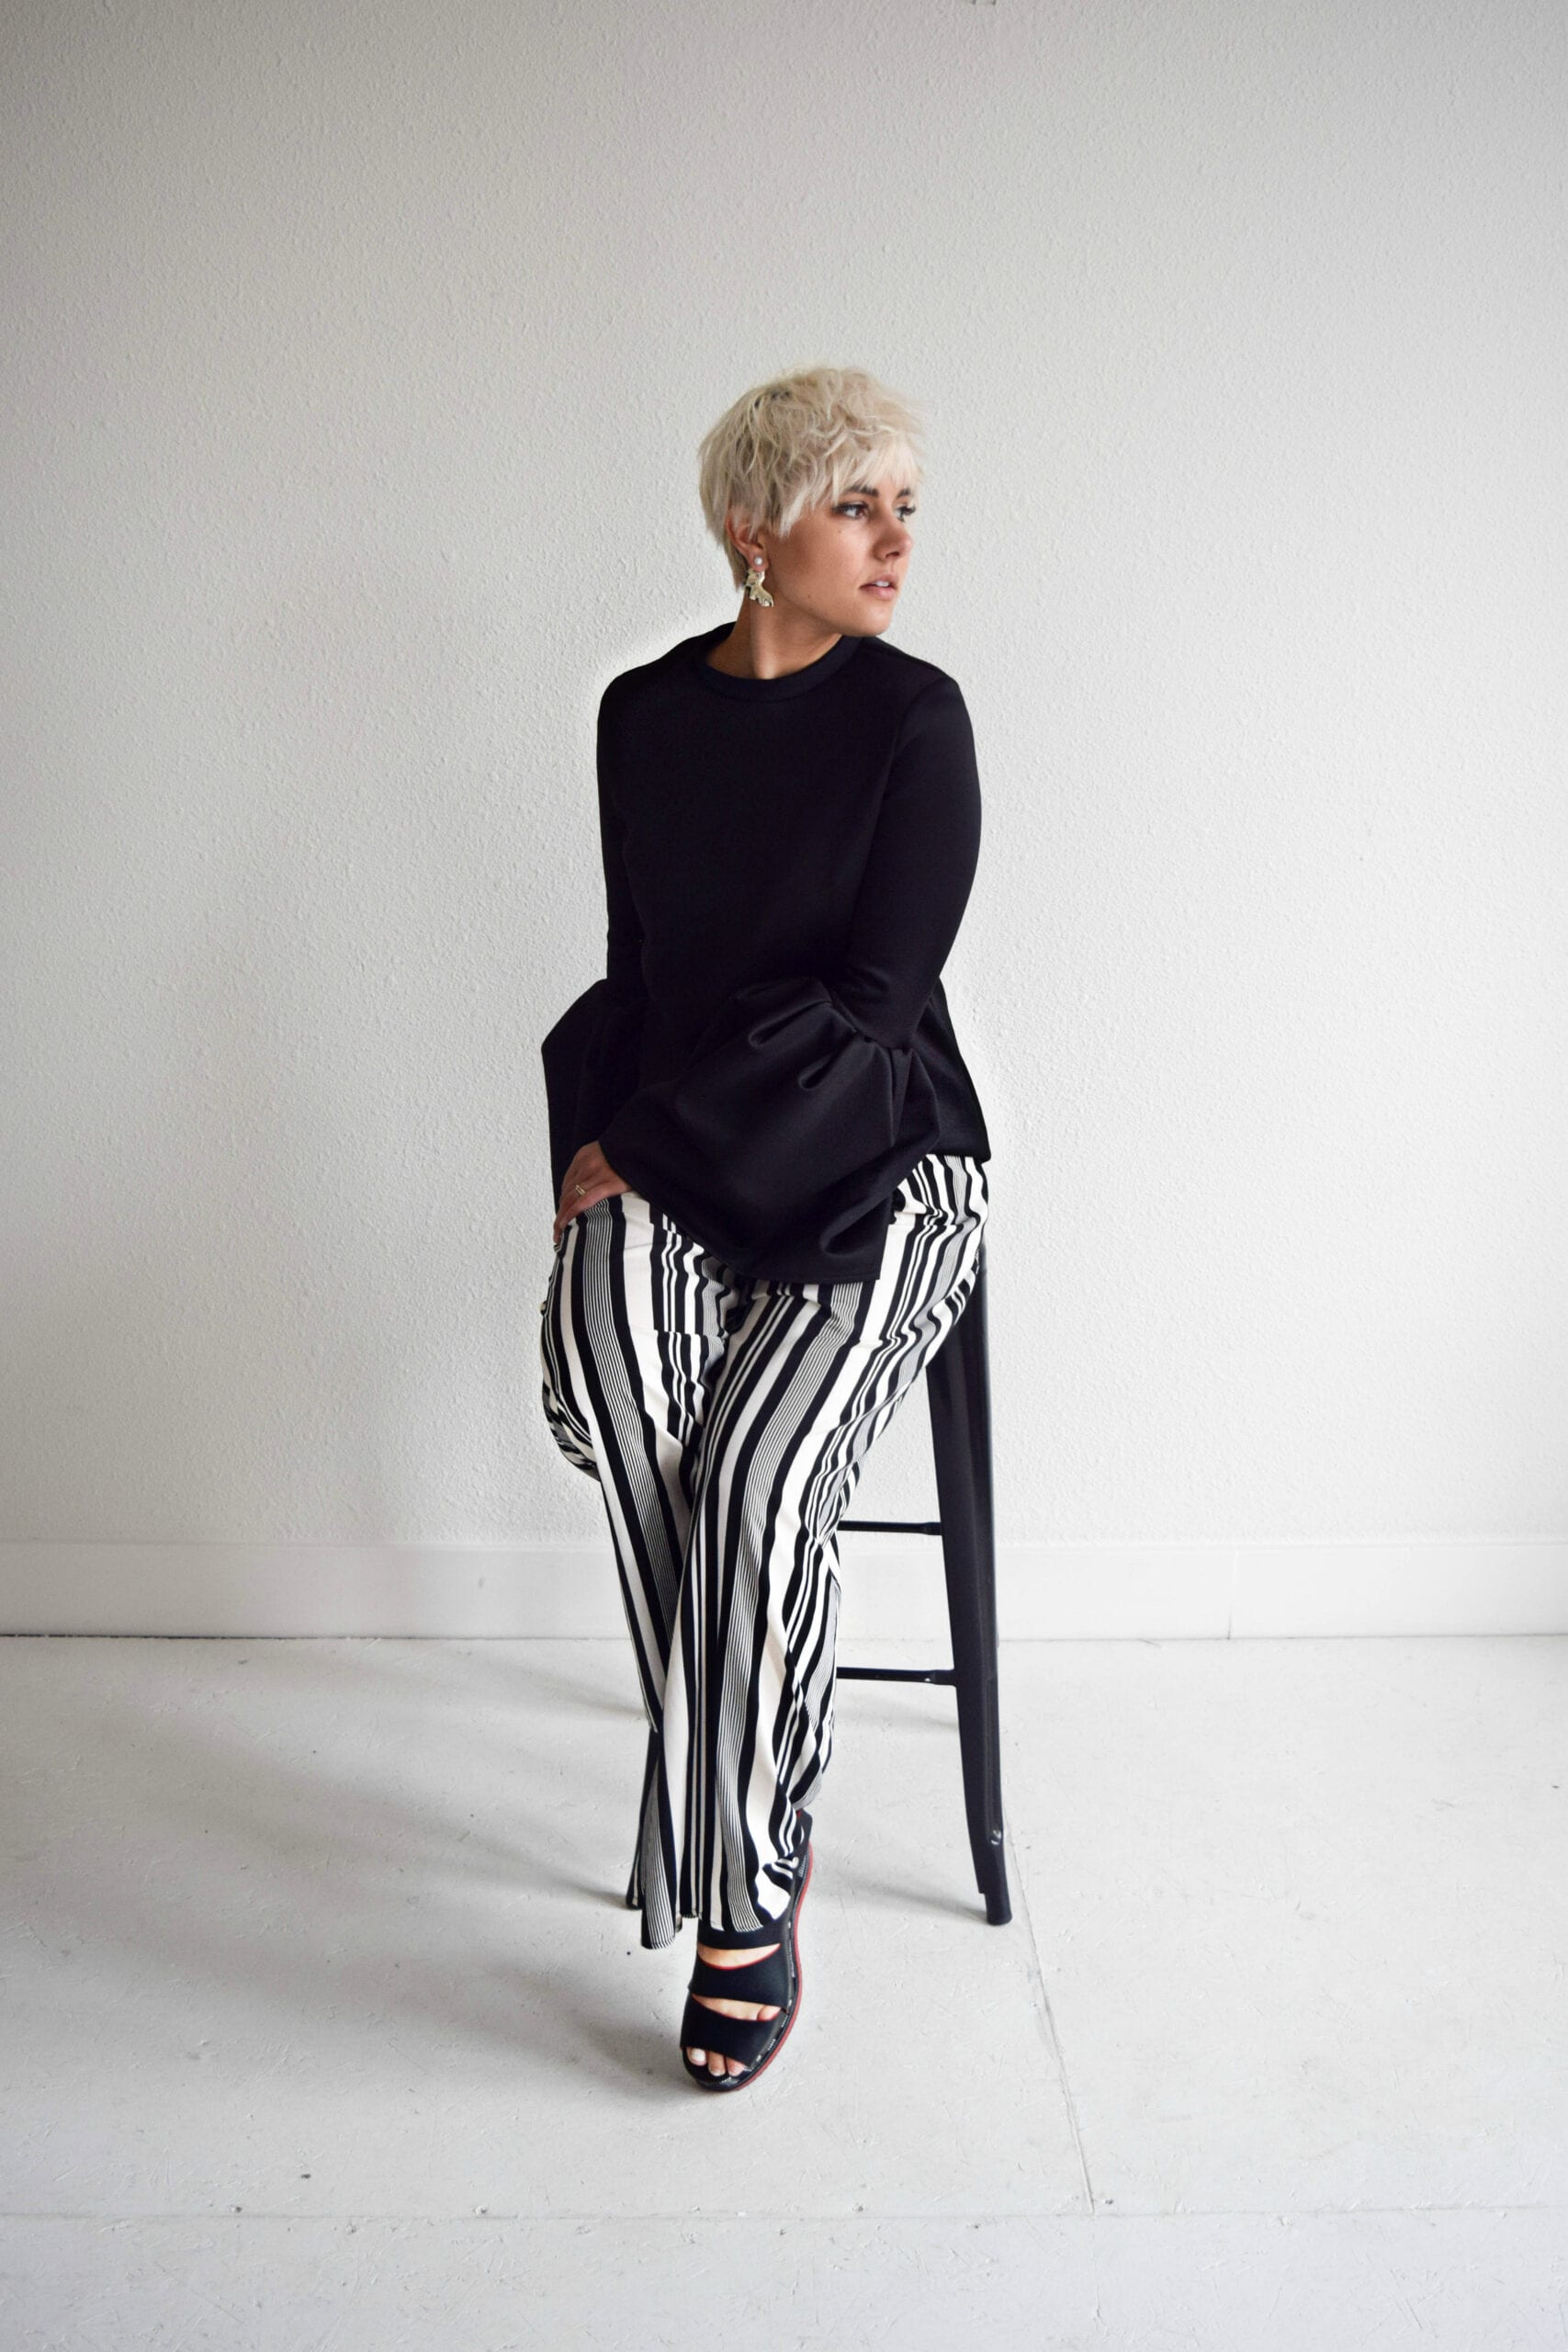 3 Ways to Wear Wide 90's Stripes Without Looking Like BeetleJuice